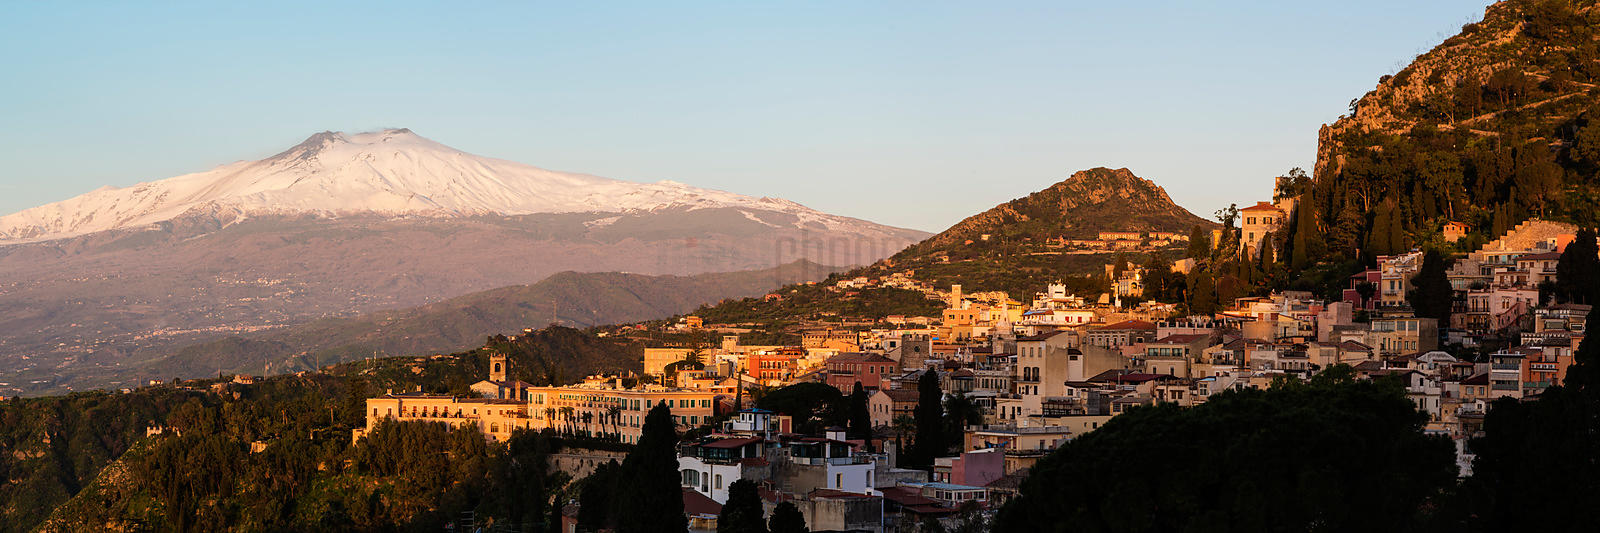 View of Taormina and Mt Etna at Sunrise